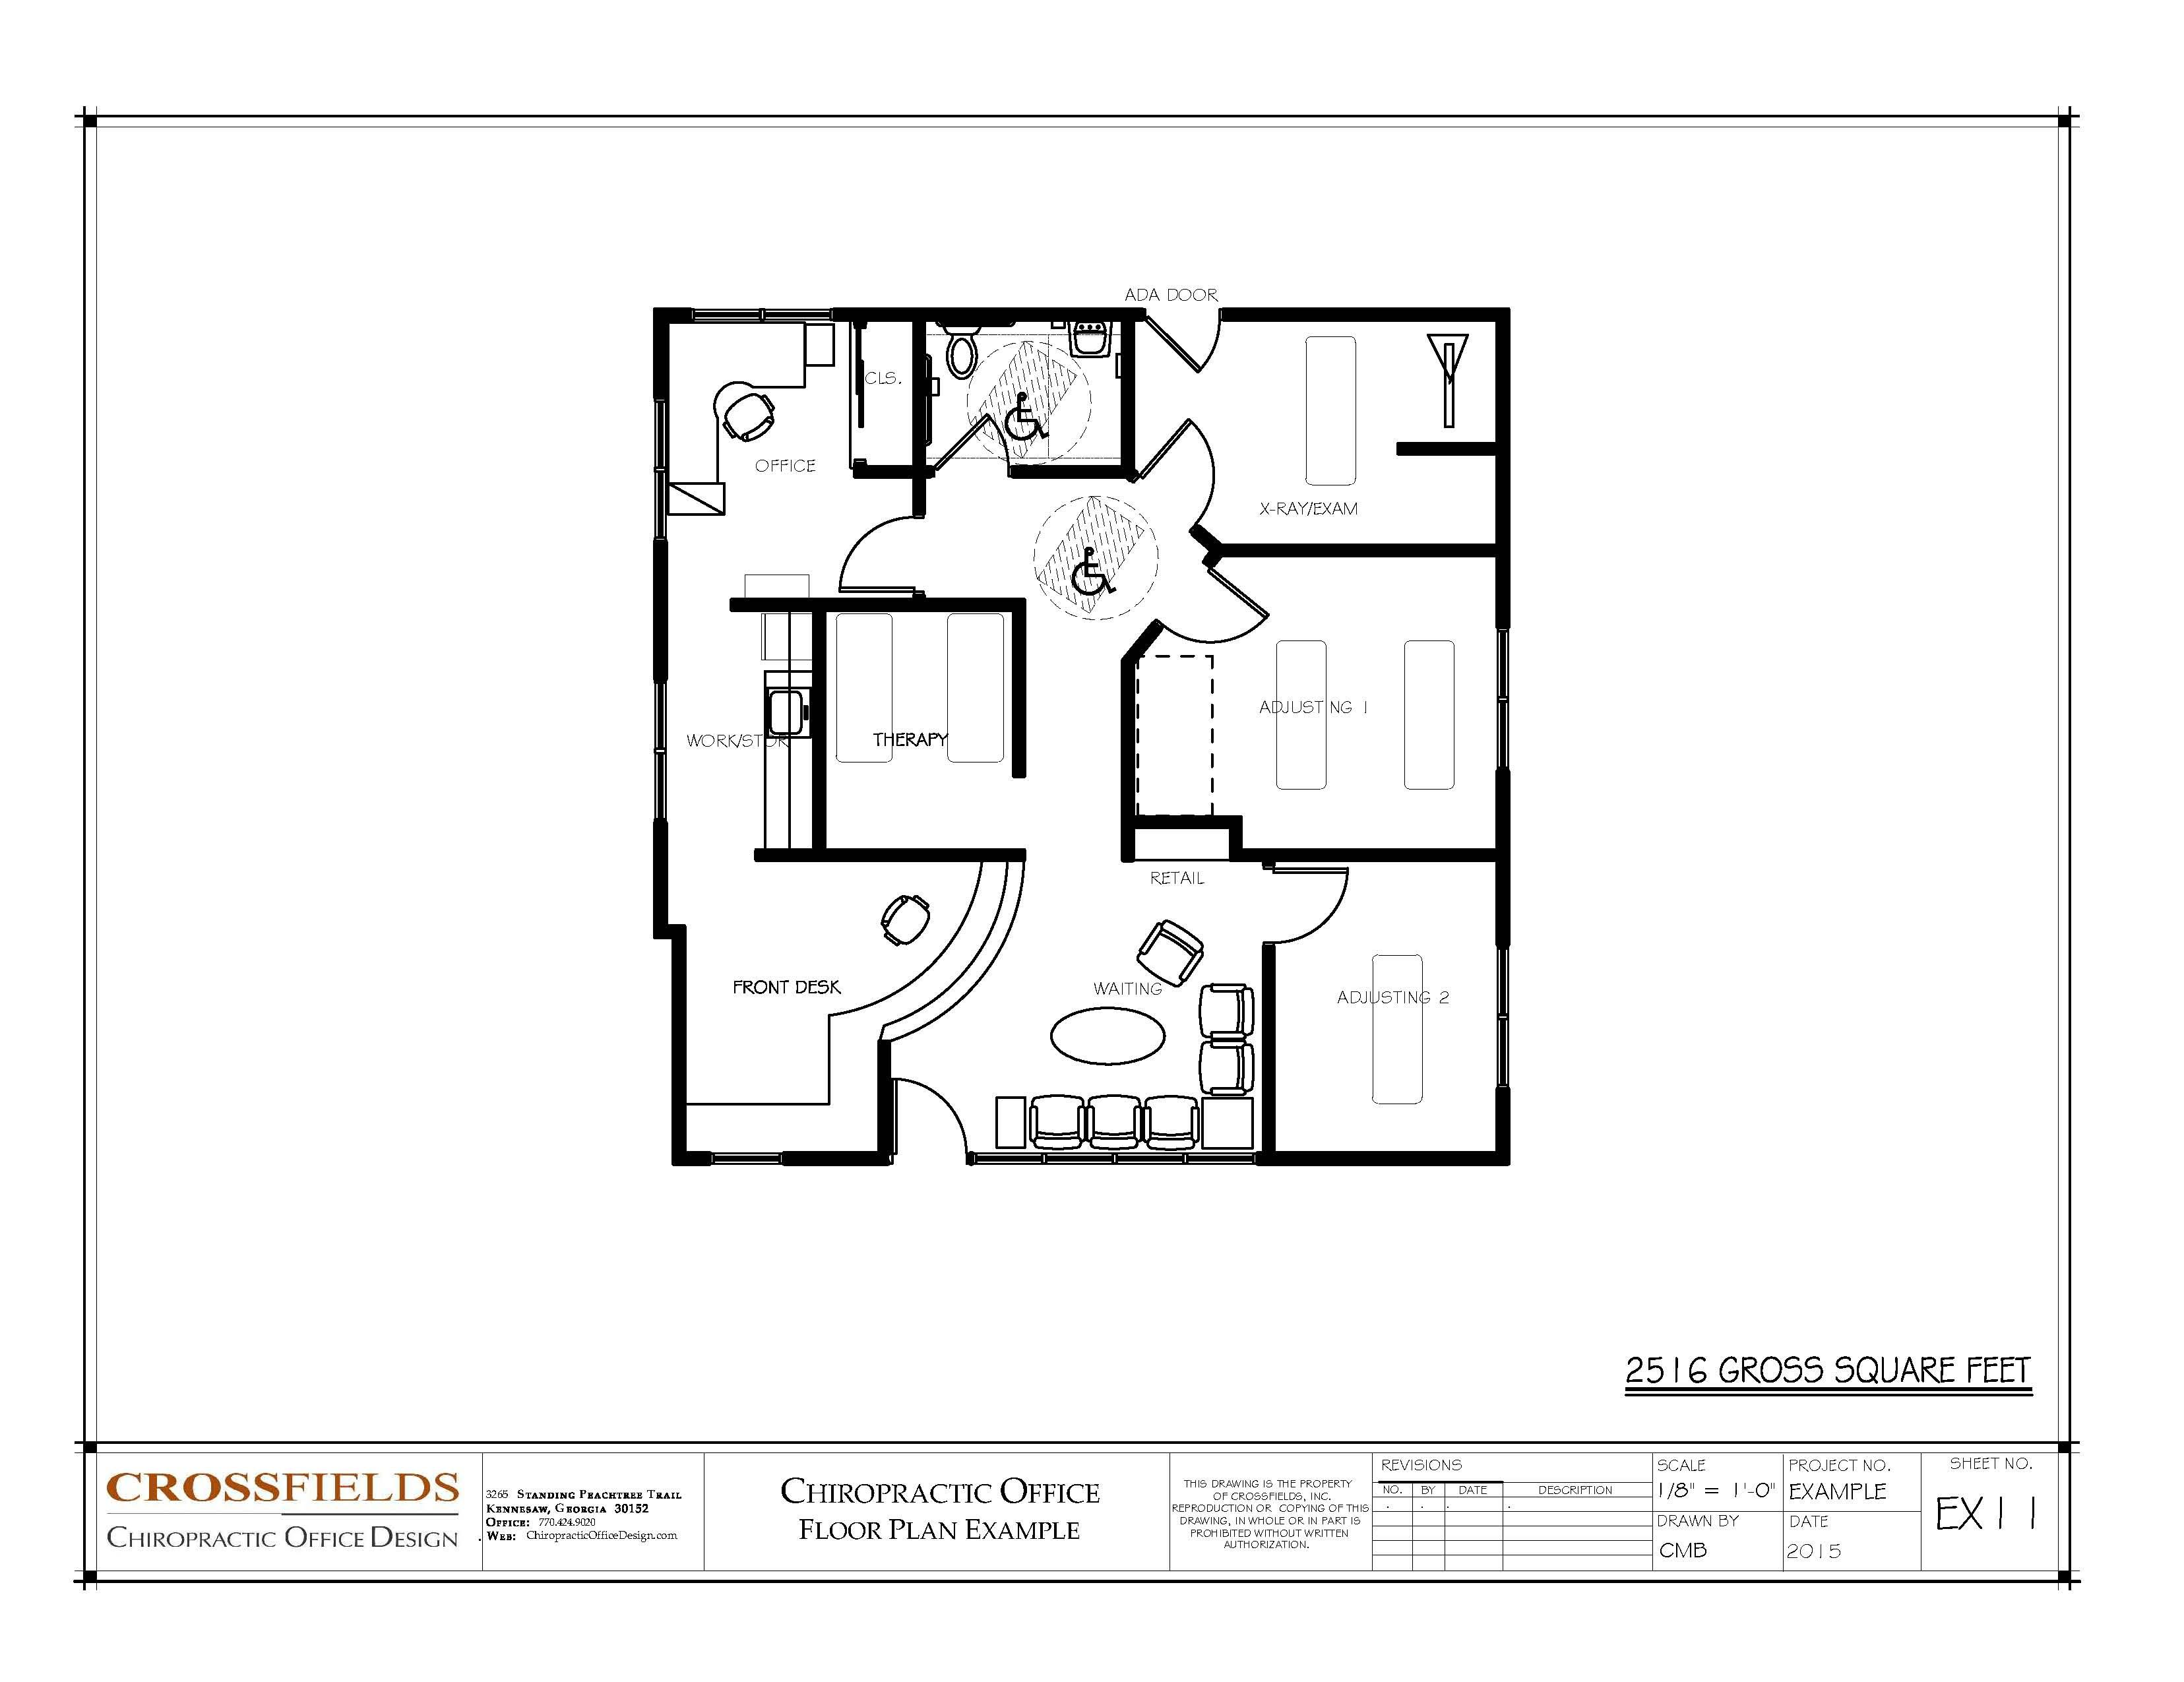 Chiropractic floor plan closed adjusting plus therapy for Chiropractic office layout examples